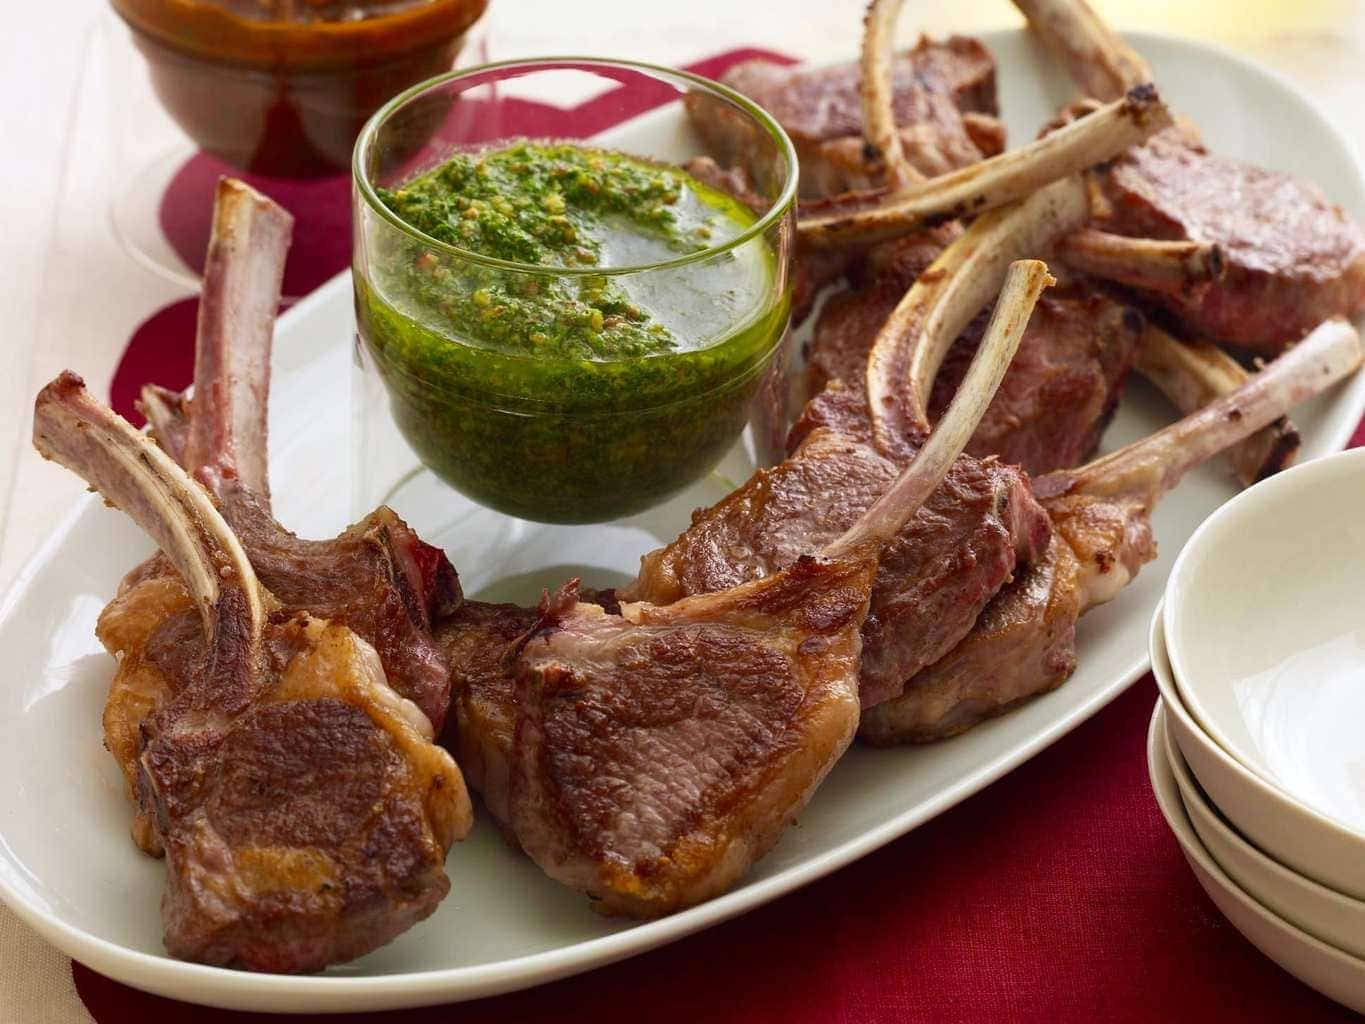 Lamb Chops with red and green sauce on oval white plate, red linen